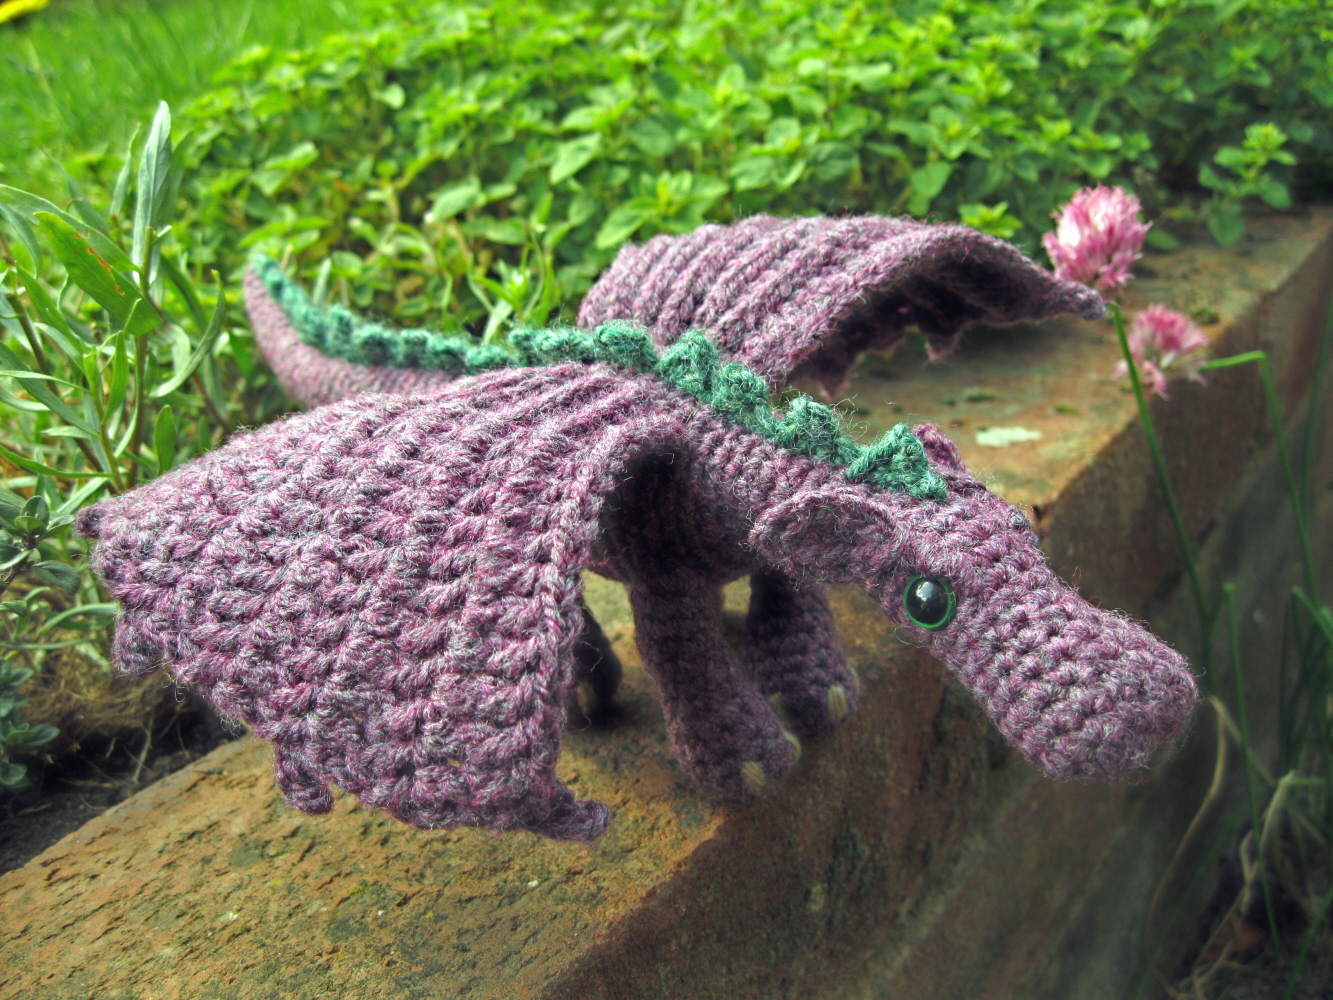 Crochet Patterns Dragon : one of the first crochet patterns i wrote was for a dragon my fierce ...